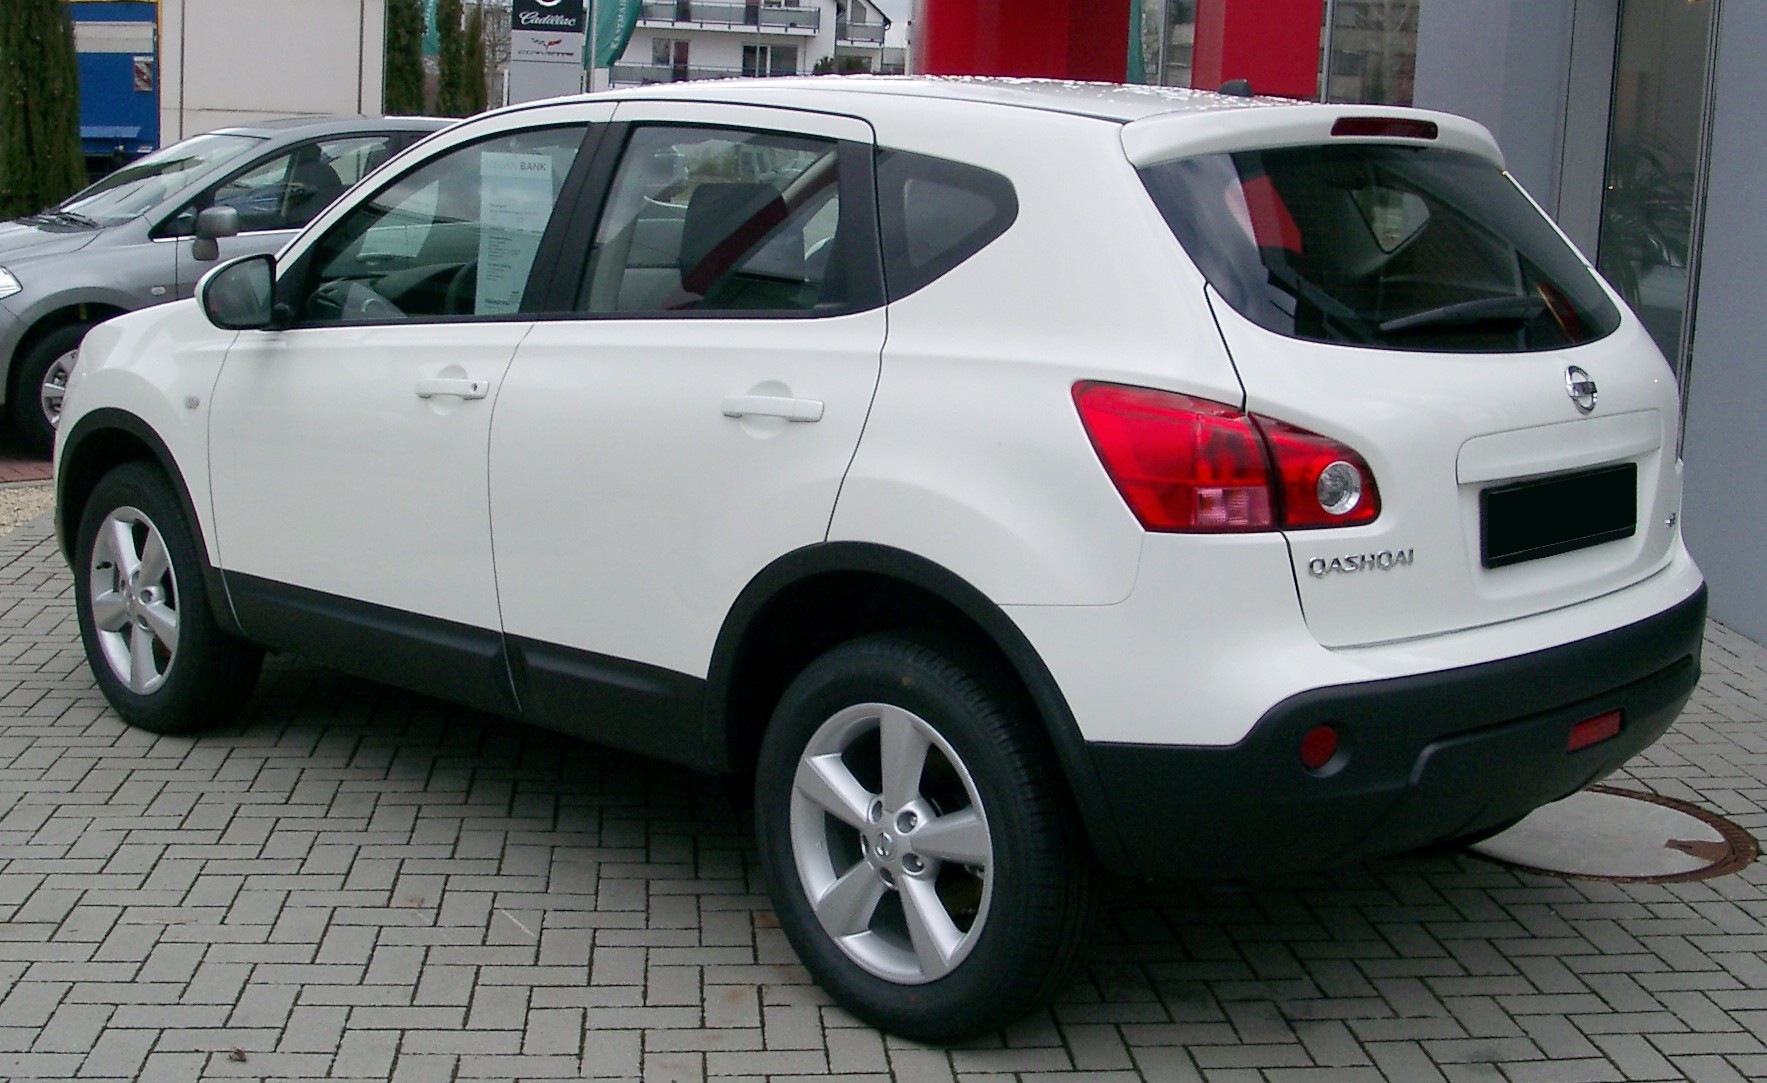 Nissan Qashqai 2004 Review Amazing Pictures And Images